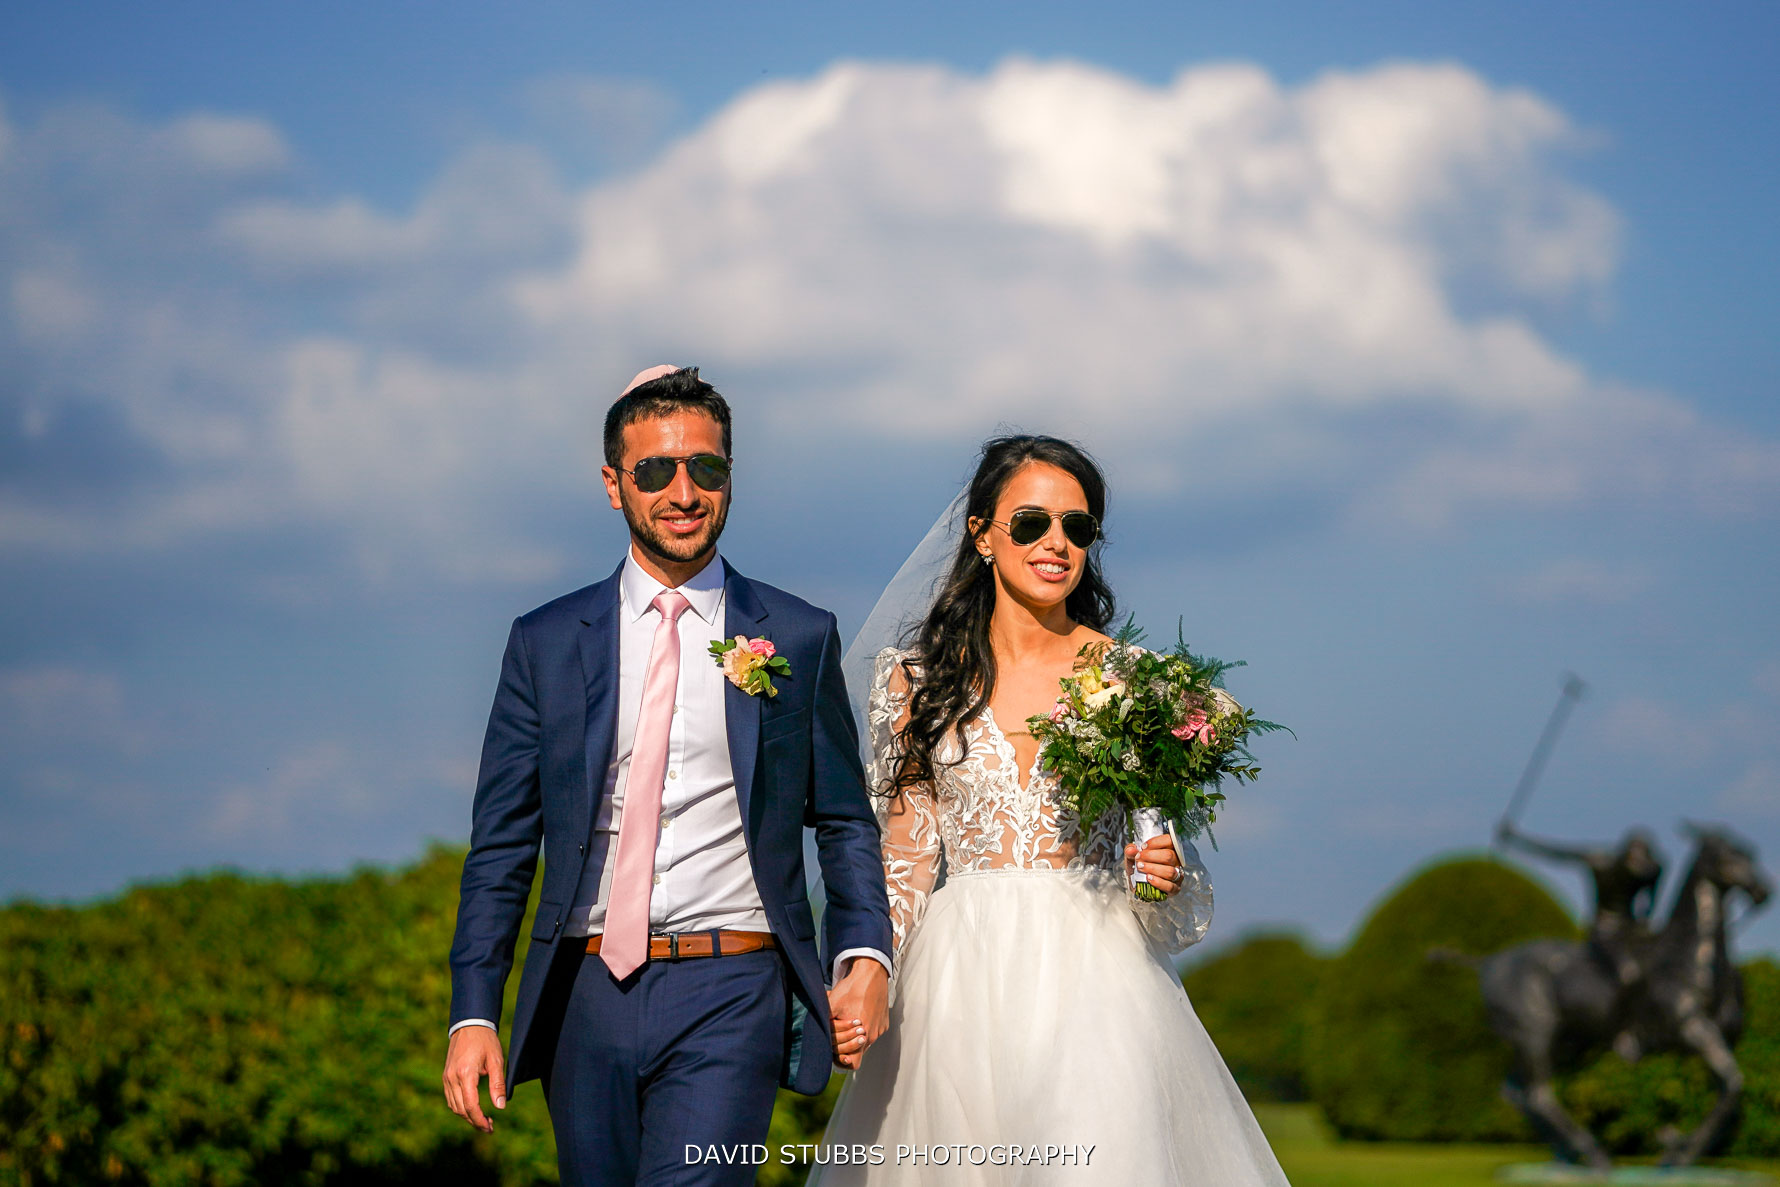 sunglasses at Uk wedding